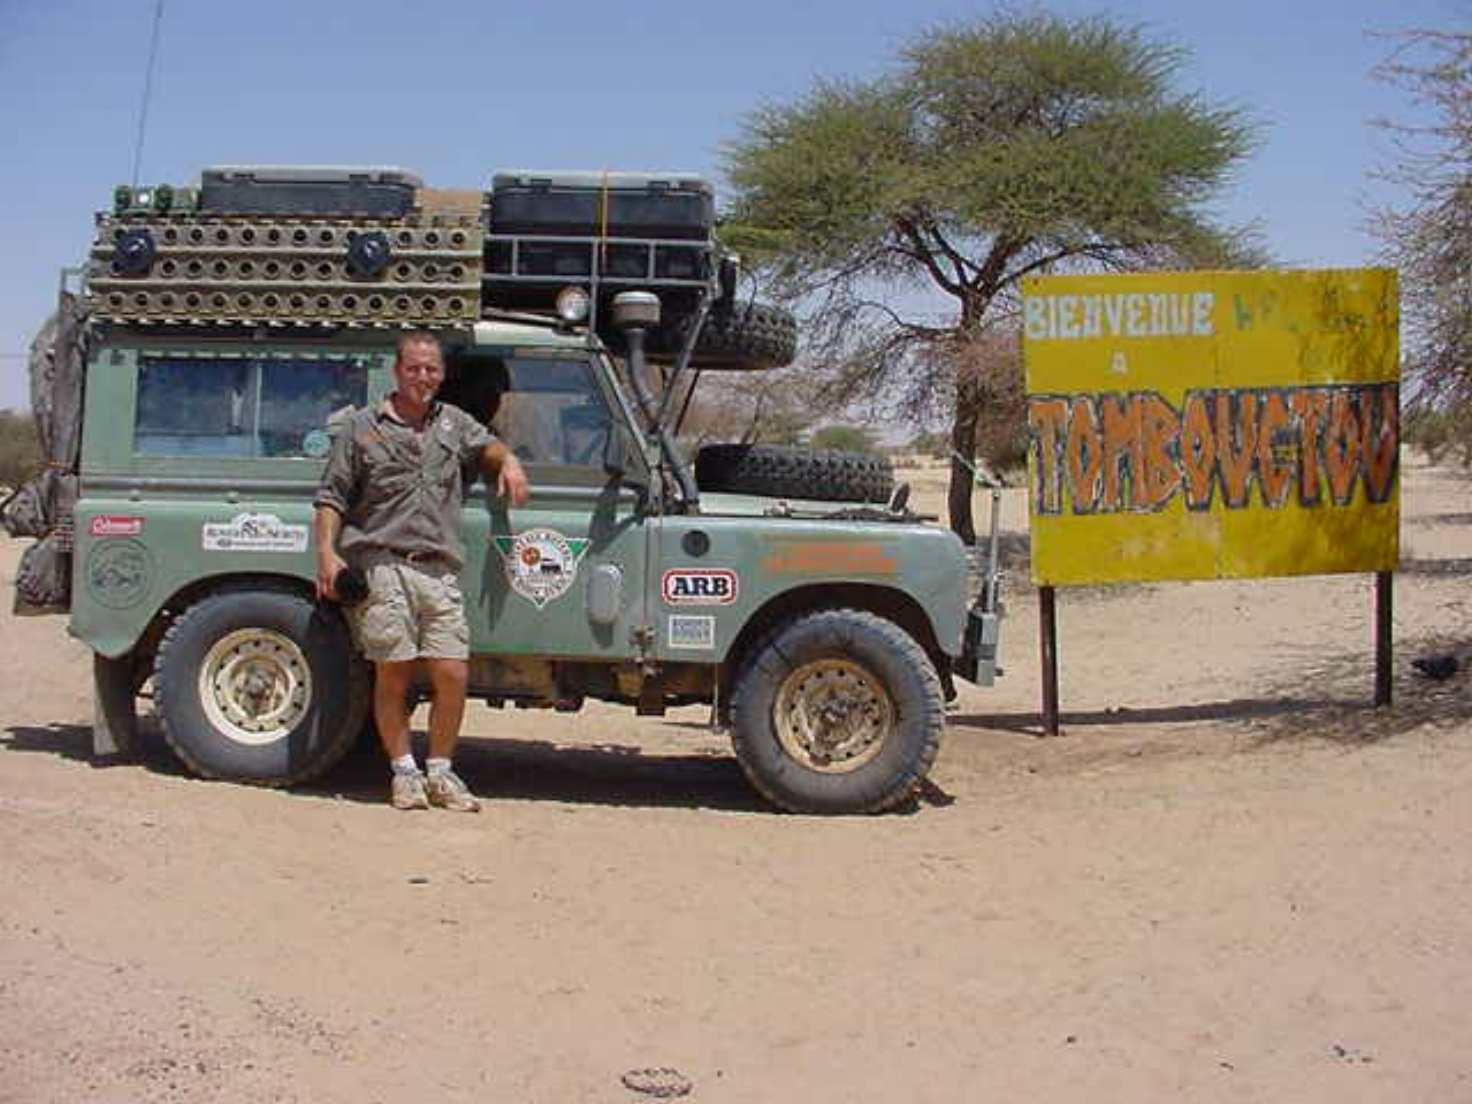 Michael Ladden, expedition leader in Timbuktu Mali